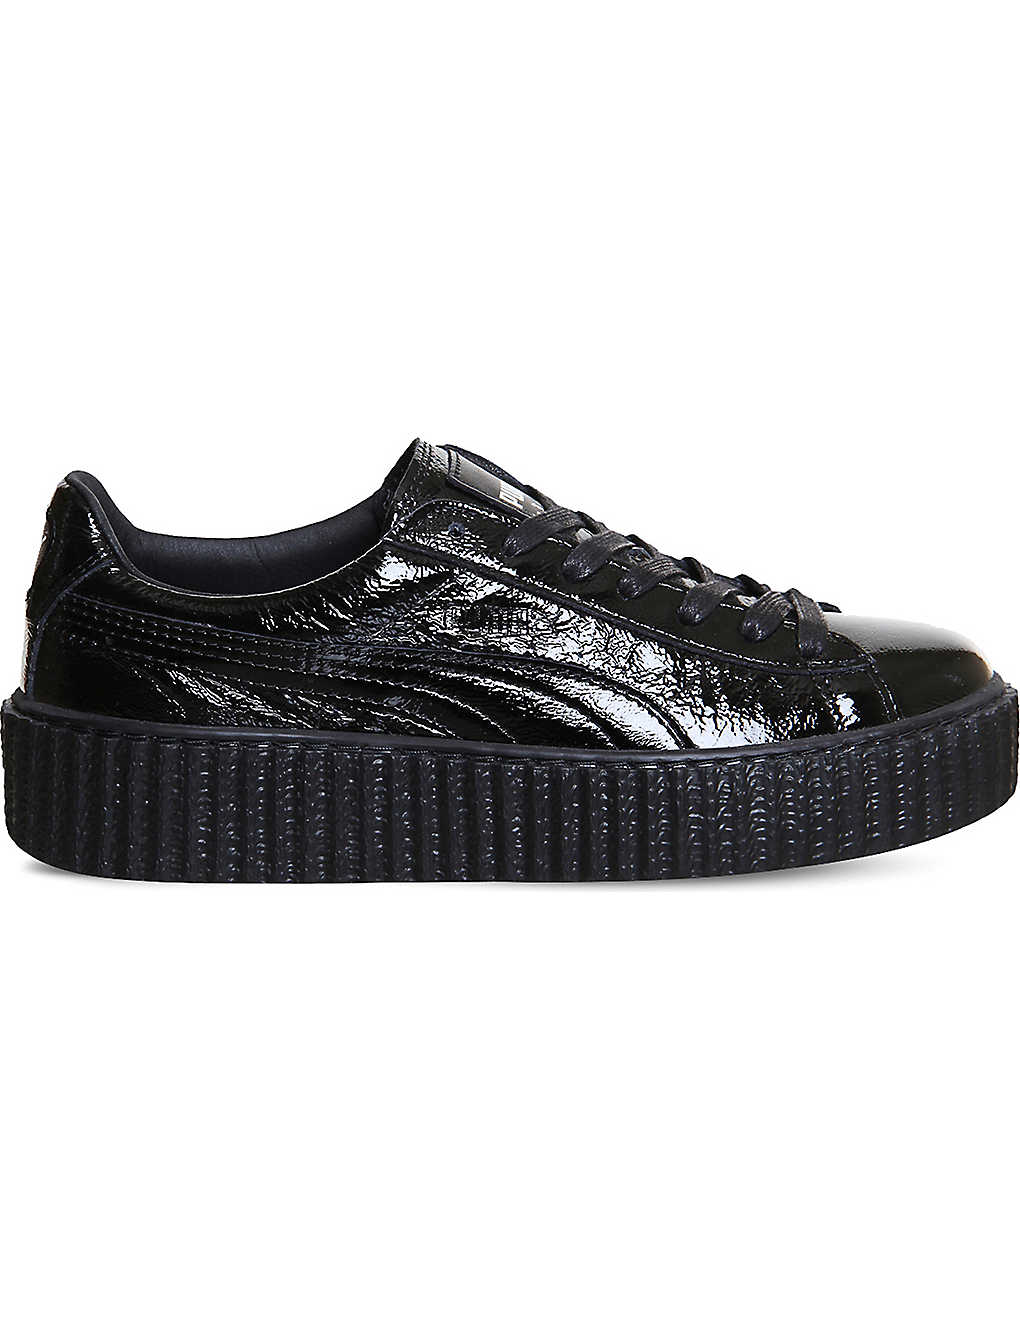 0238c39e319 PUMA - Basket Creeper patent leather trainers